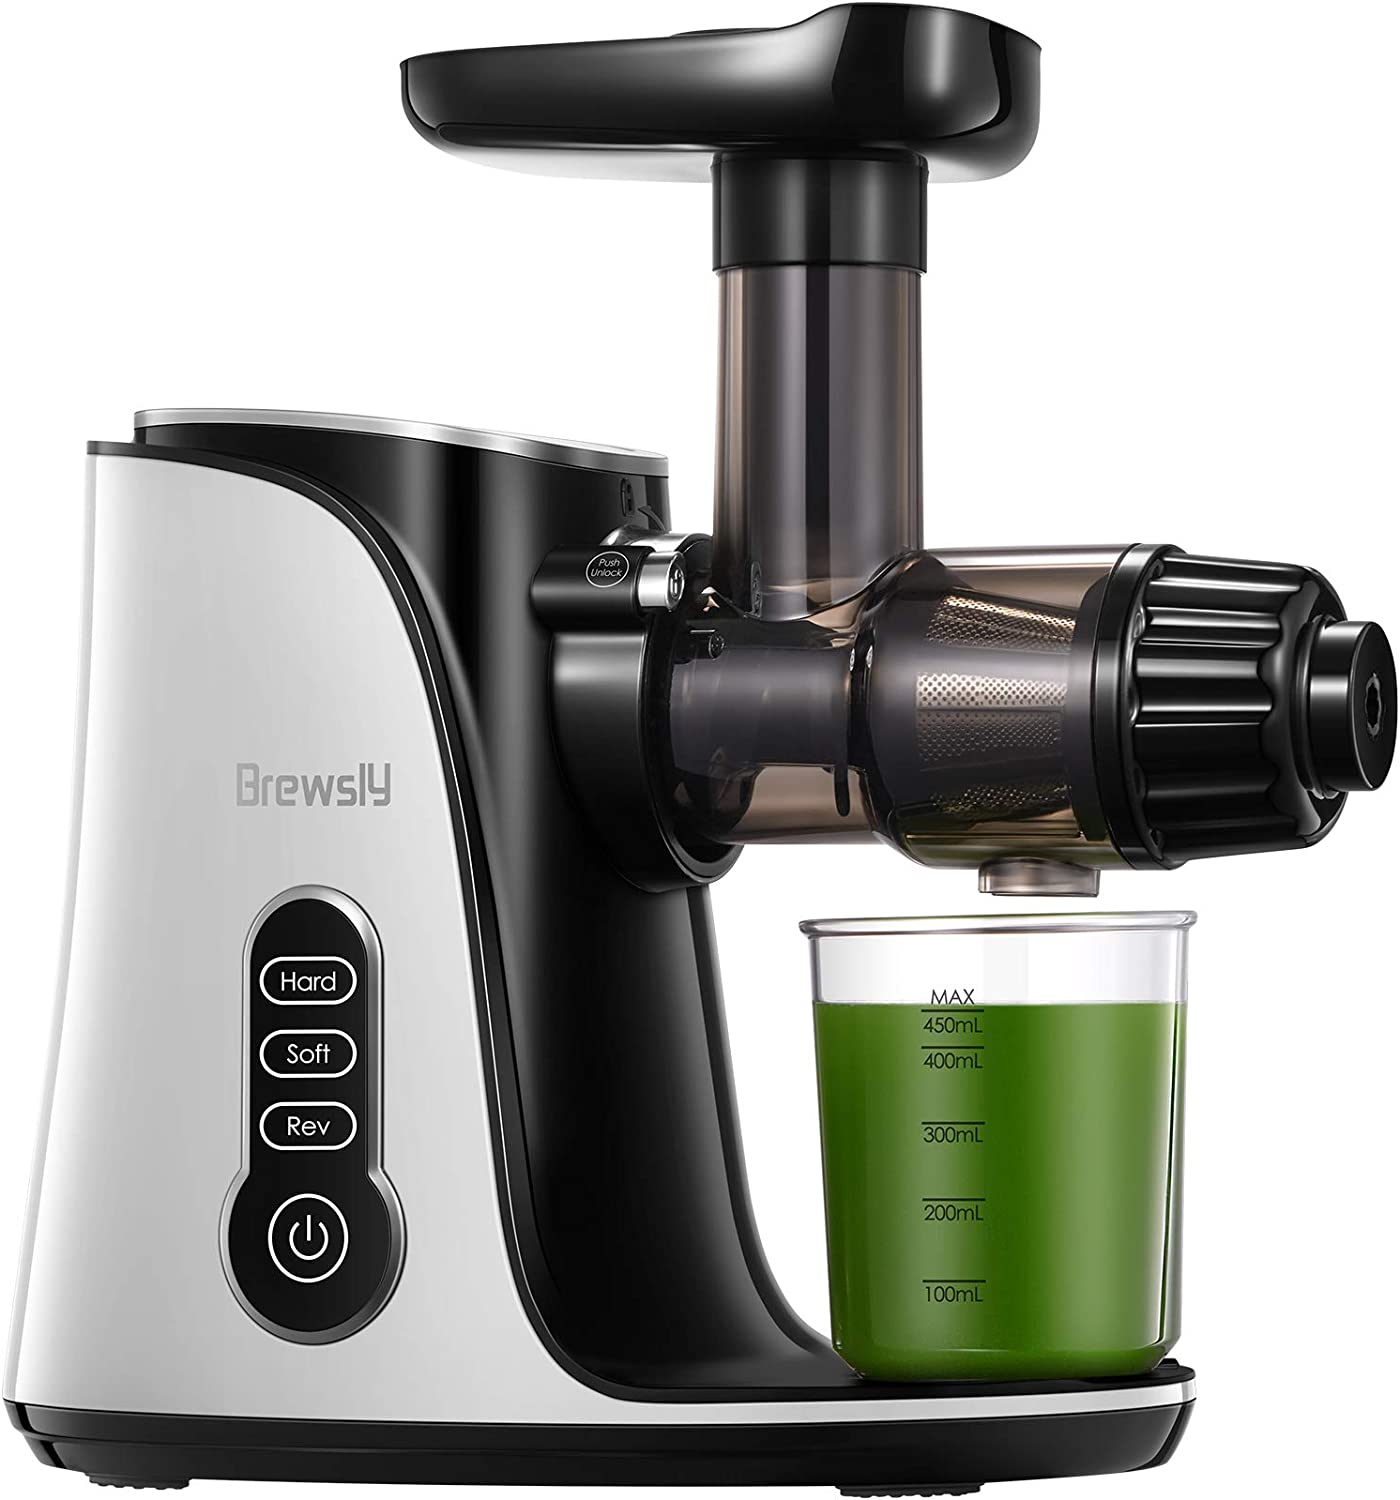 Juicer Machines, Brewsly 3-Mode 2-Speed Slow Masticating Juicer, Cold Press Juicer with High Juice Yield for Vegetables and Fruits, Quite Motor & Compact & Easy to Clean and Assemble,Fresh White